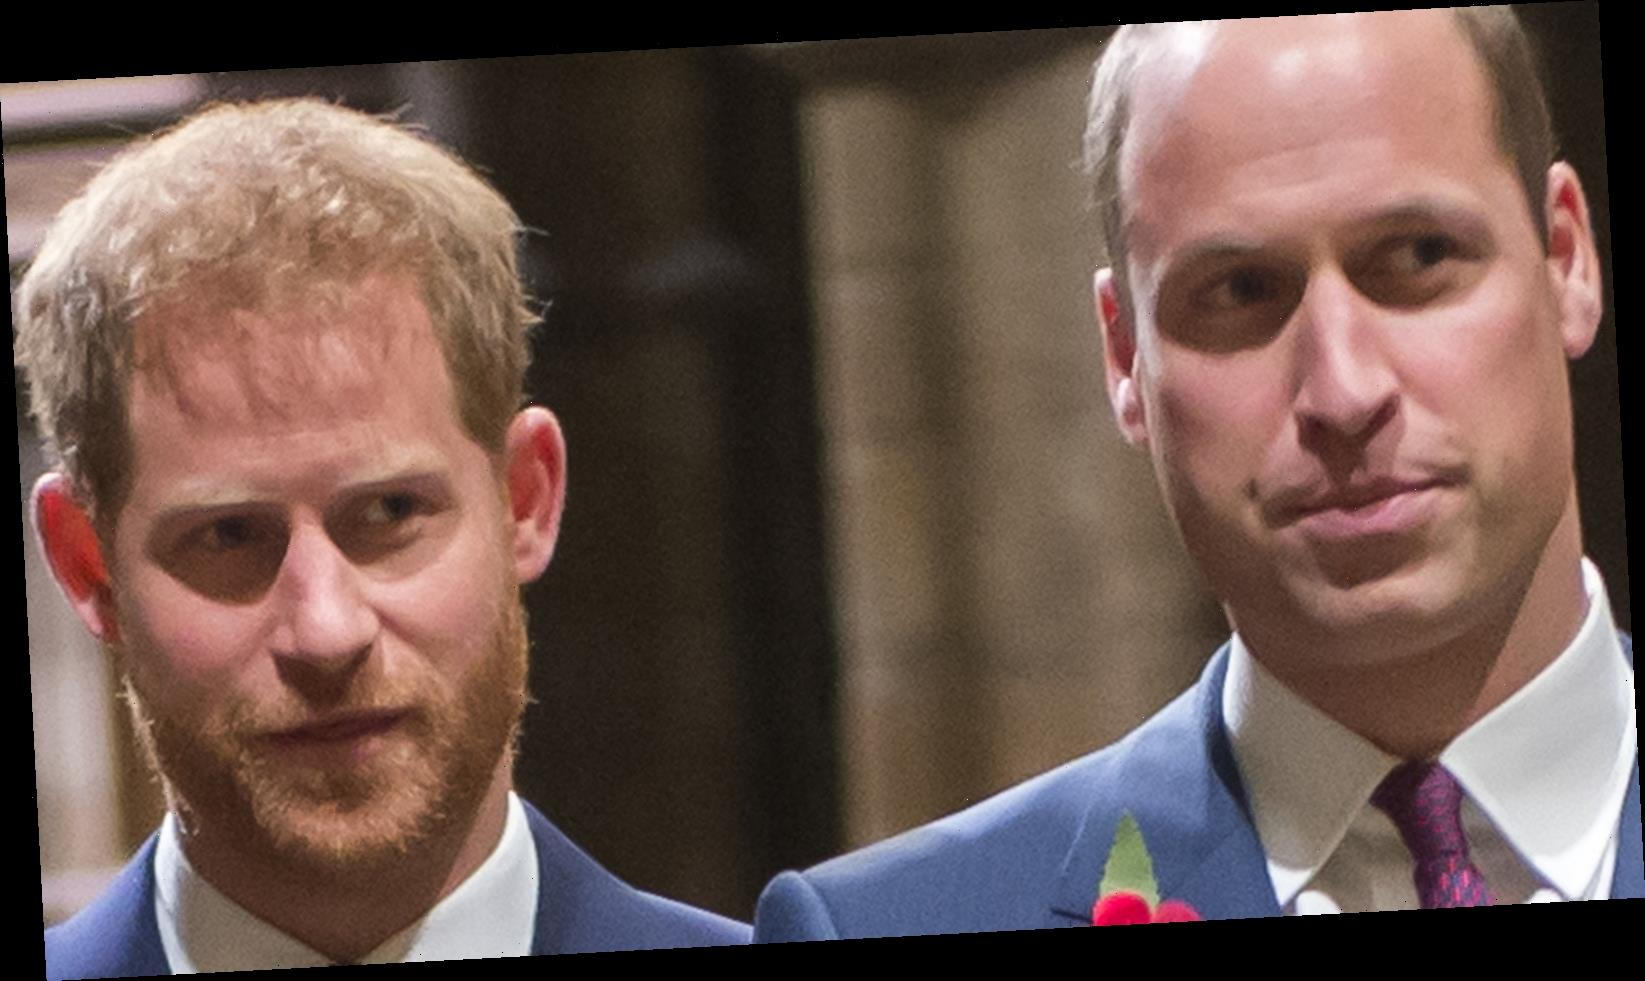 Prince William And Prince Harry Reportedly Only Had One Person In Mind When They Spoke After Tell-All